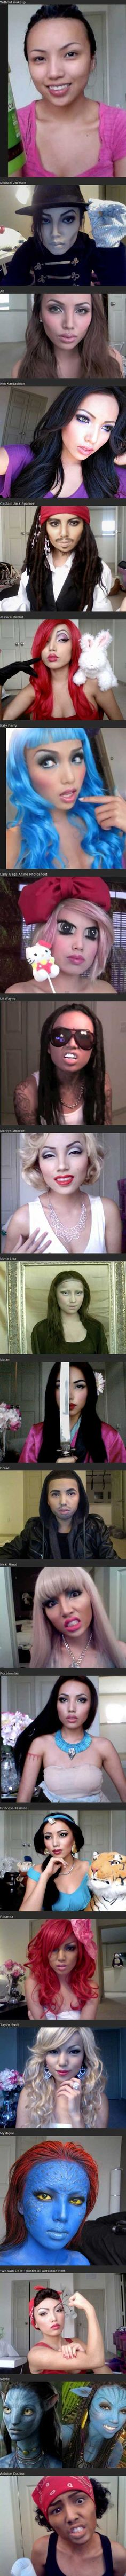 The power of make up - Imgur